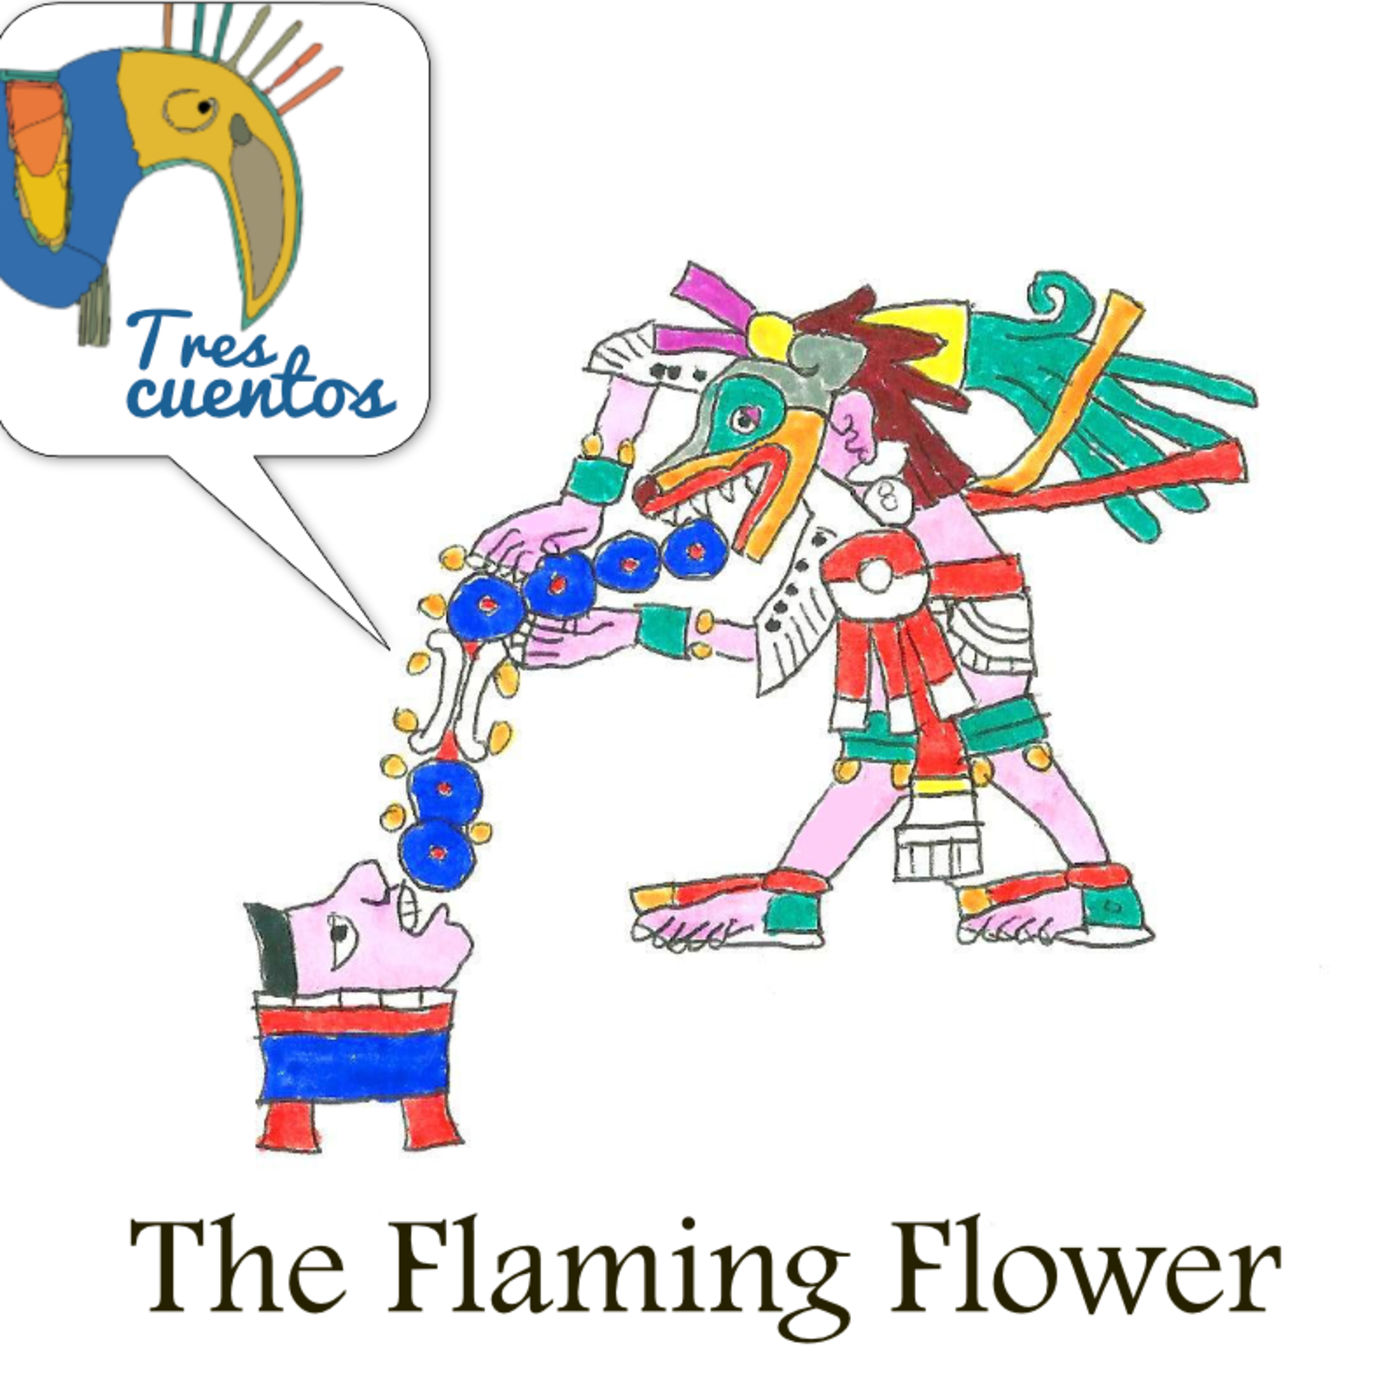 4- Myths of Love and Hate - The Flaming Flower - Mexico